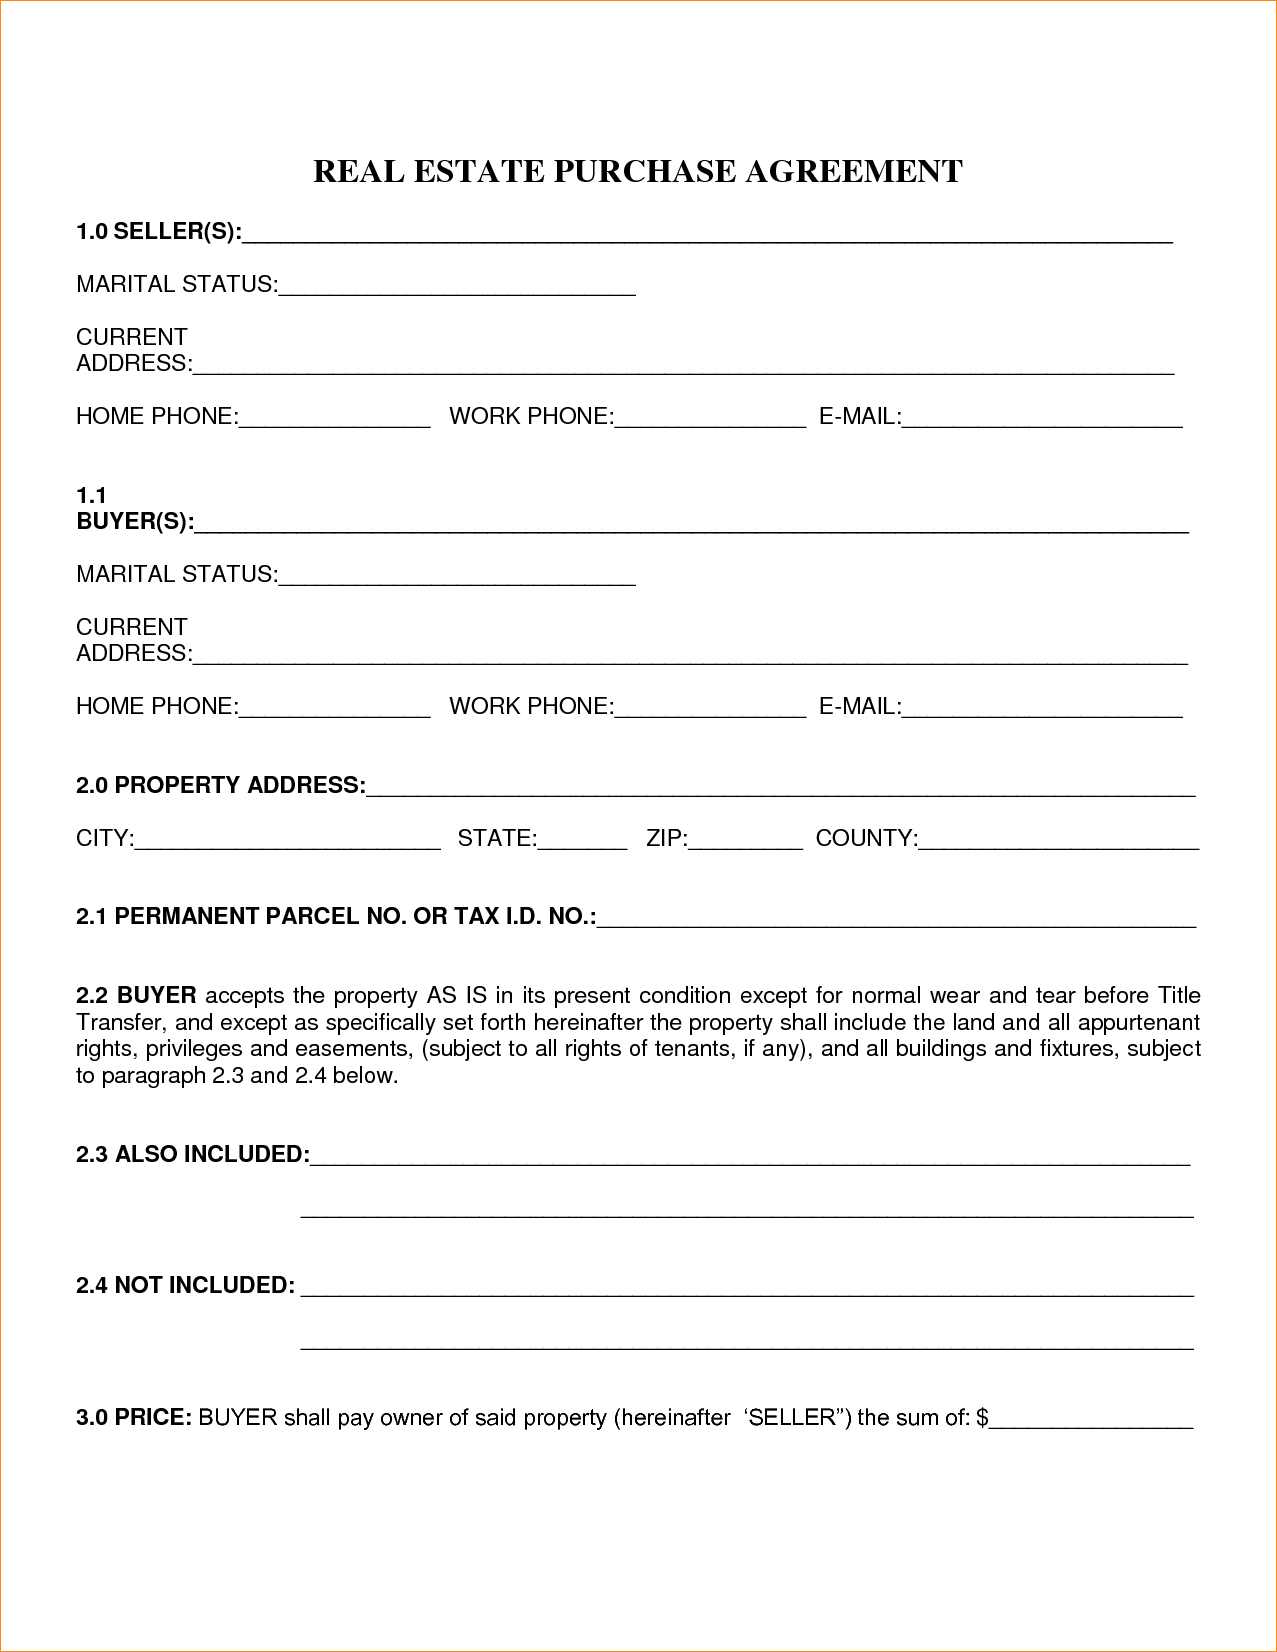 Free Blank Purchase Agreement Form Images To Home Sale